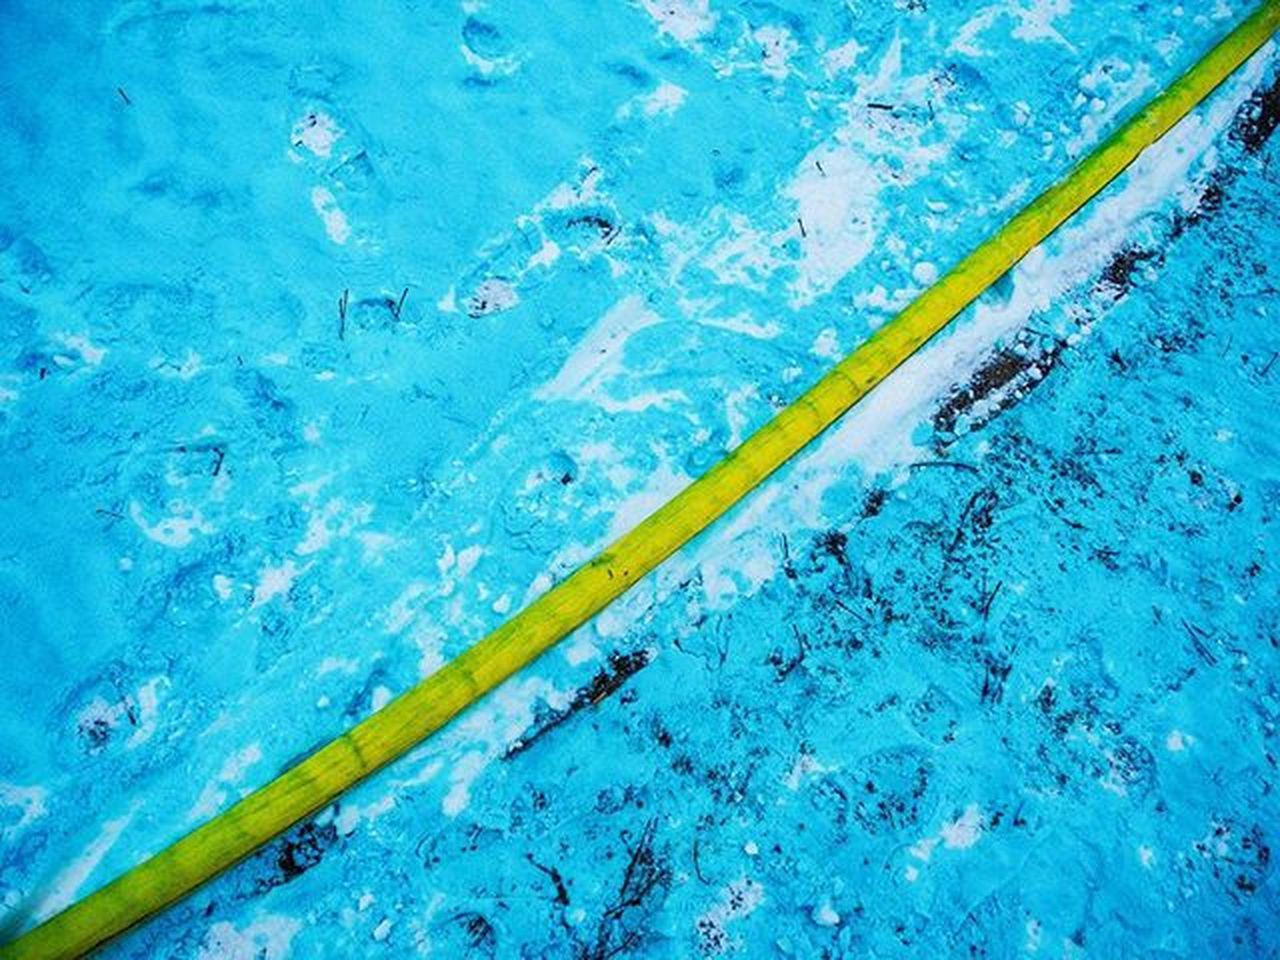 Beautiful stock photos of grafiken, blue, textured, high angle view, swimming pool